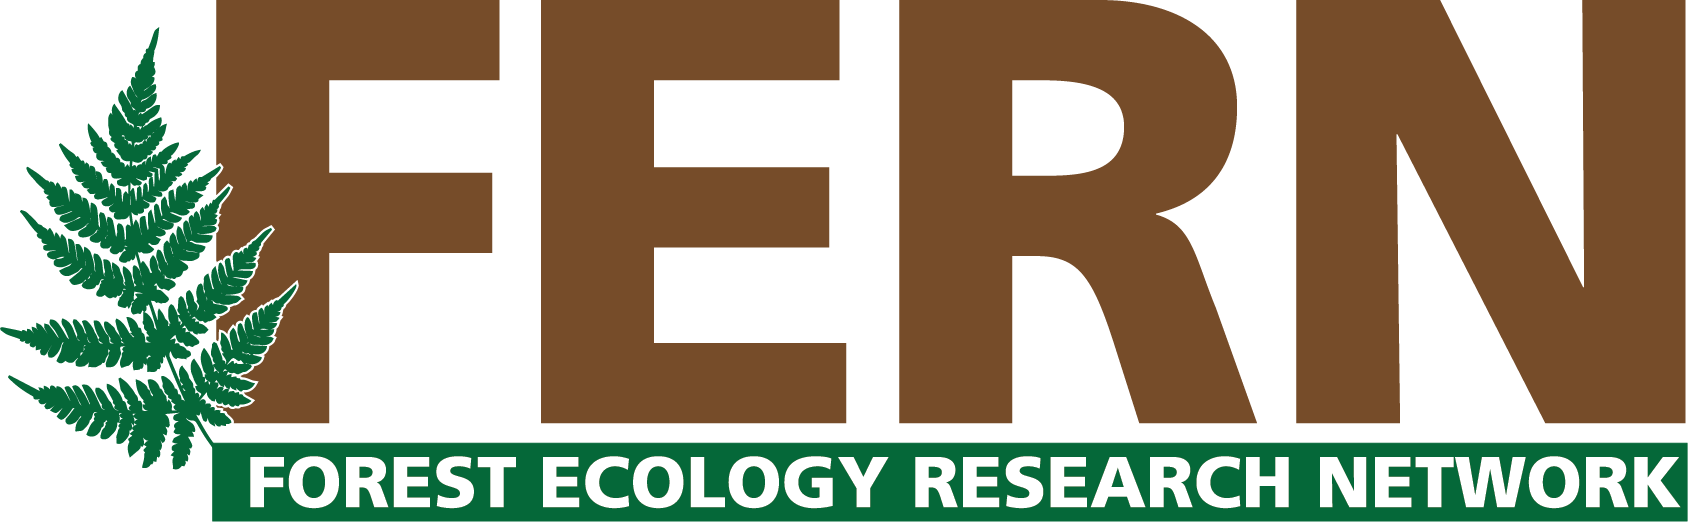 Forest Ecology Research Network